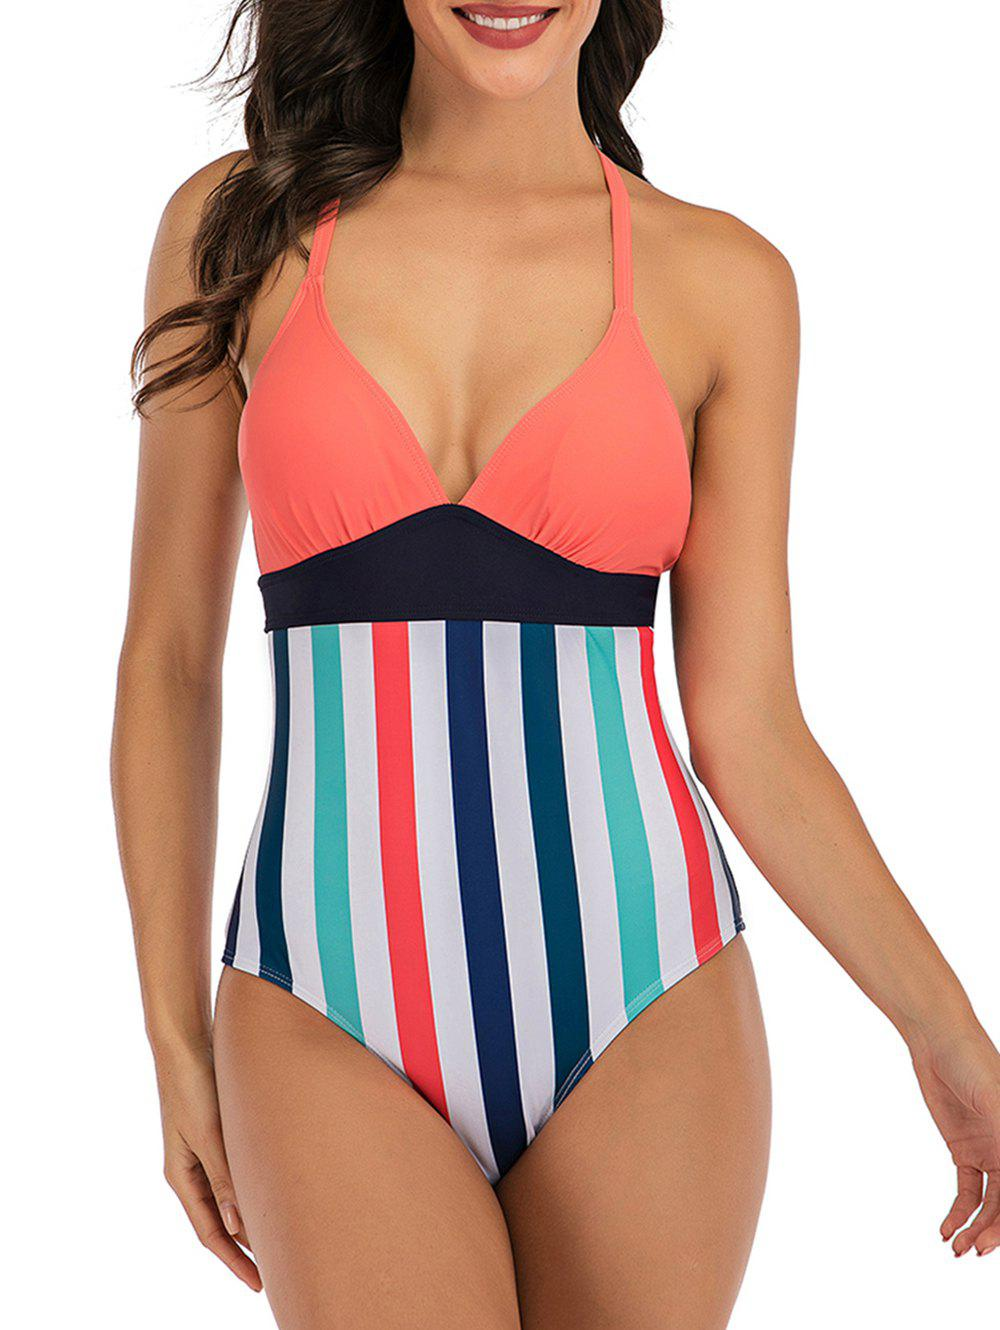 Lace Up Back Stripes Colorblock One-piece Swimsuit - multicolor L